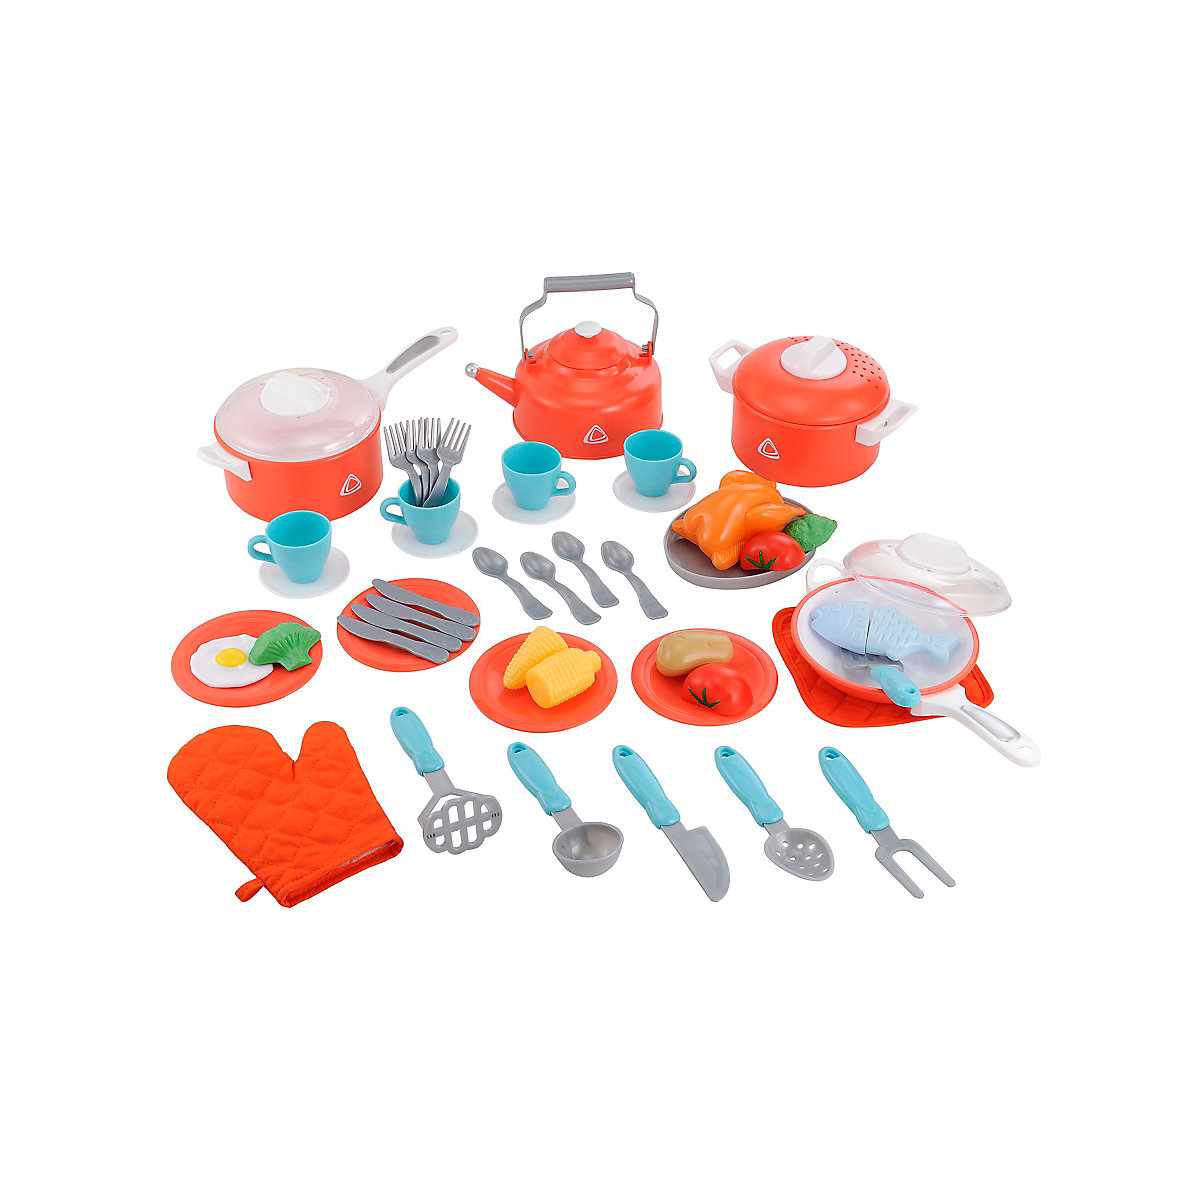 New ELC Boys and Girls Kitchen Set Toy From 3 years - Dressing Up Gifts